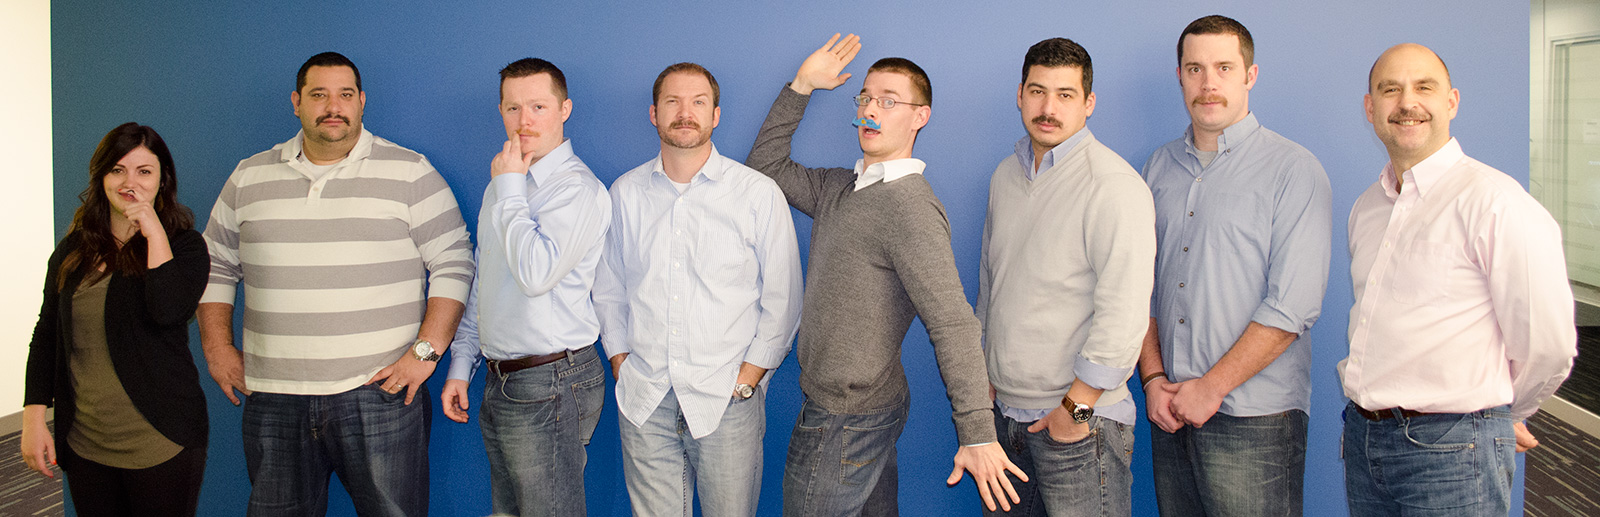 Stories from the Movember Crew